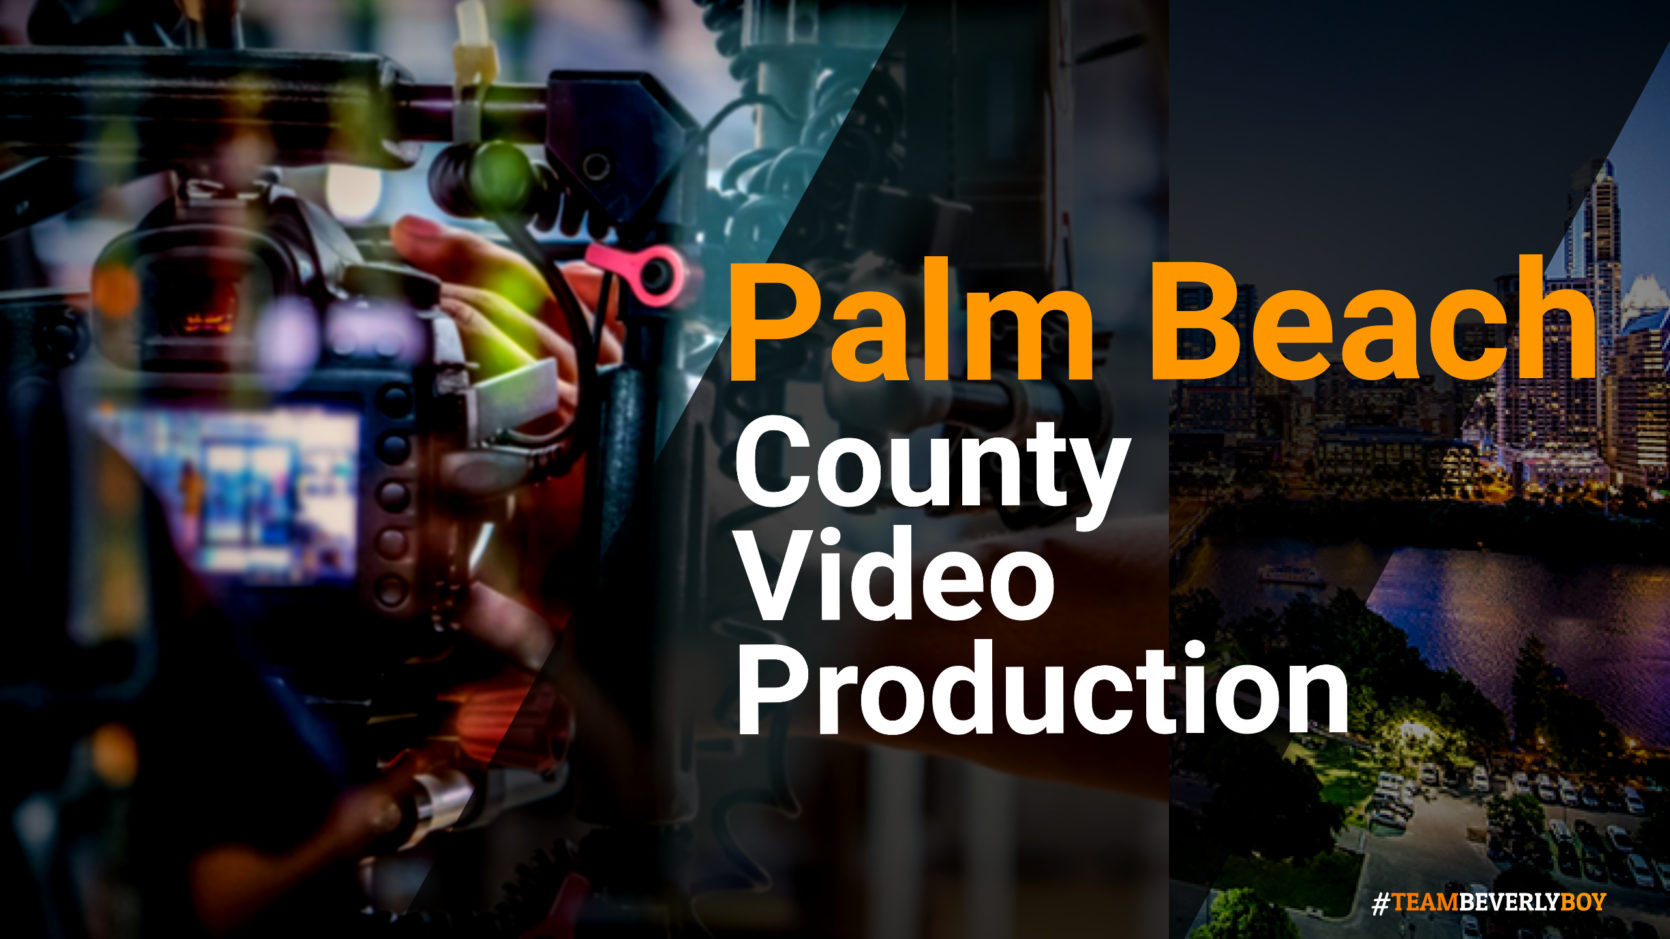 Palm Beach county video production